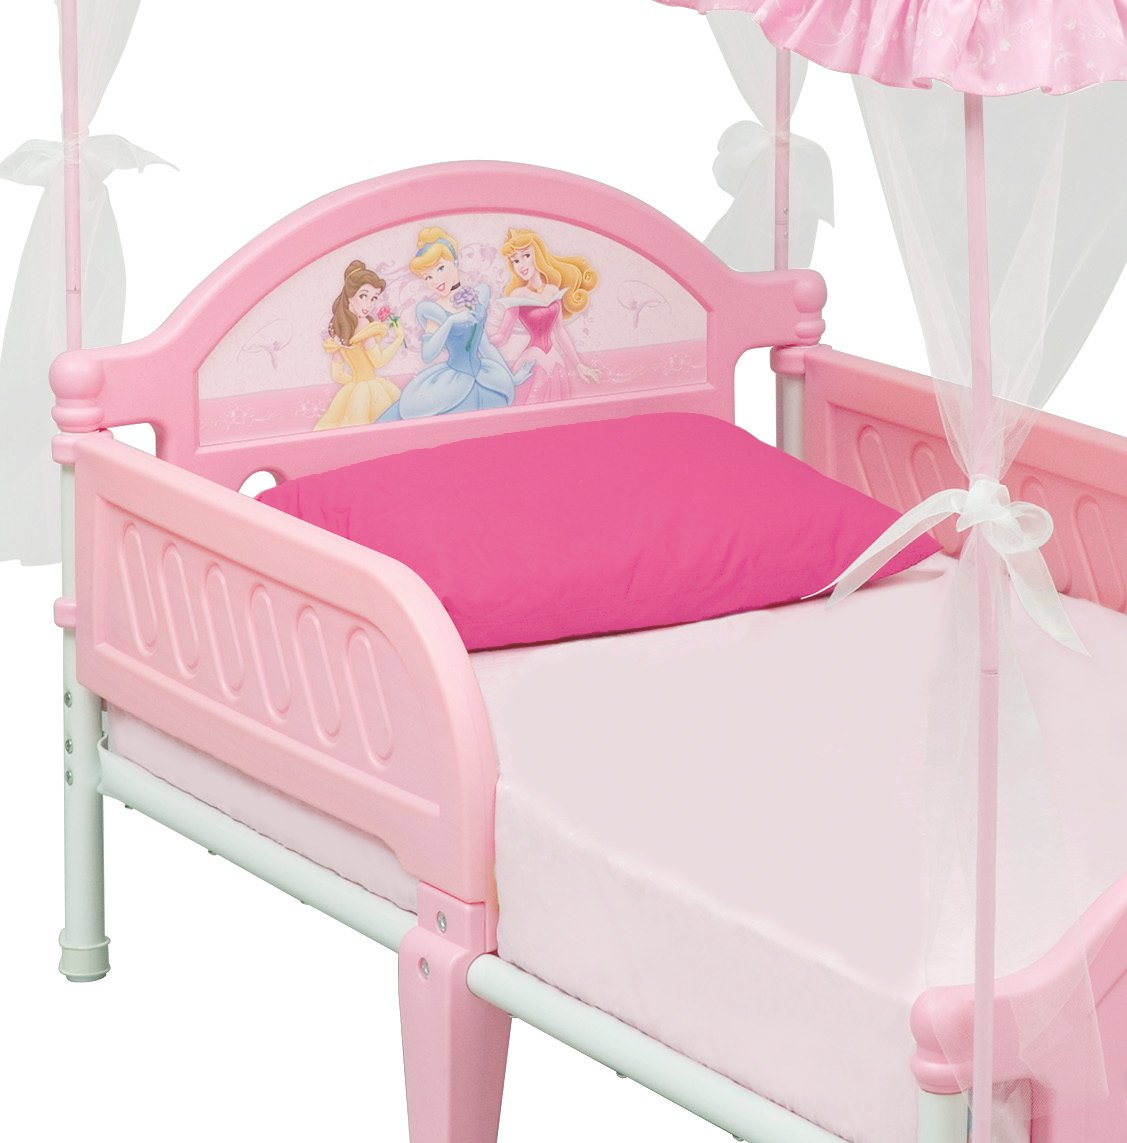 sc 1 st  Amazon.com & Amazon.com: Disney Princess Toddler Bed with Canopy: Toys u0026 Games